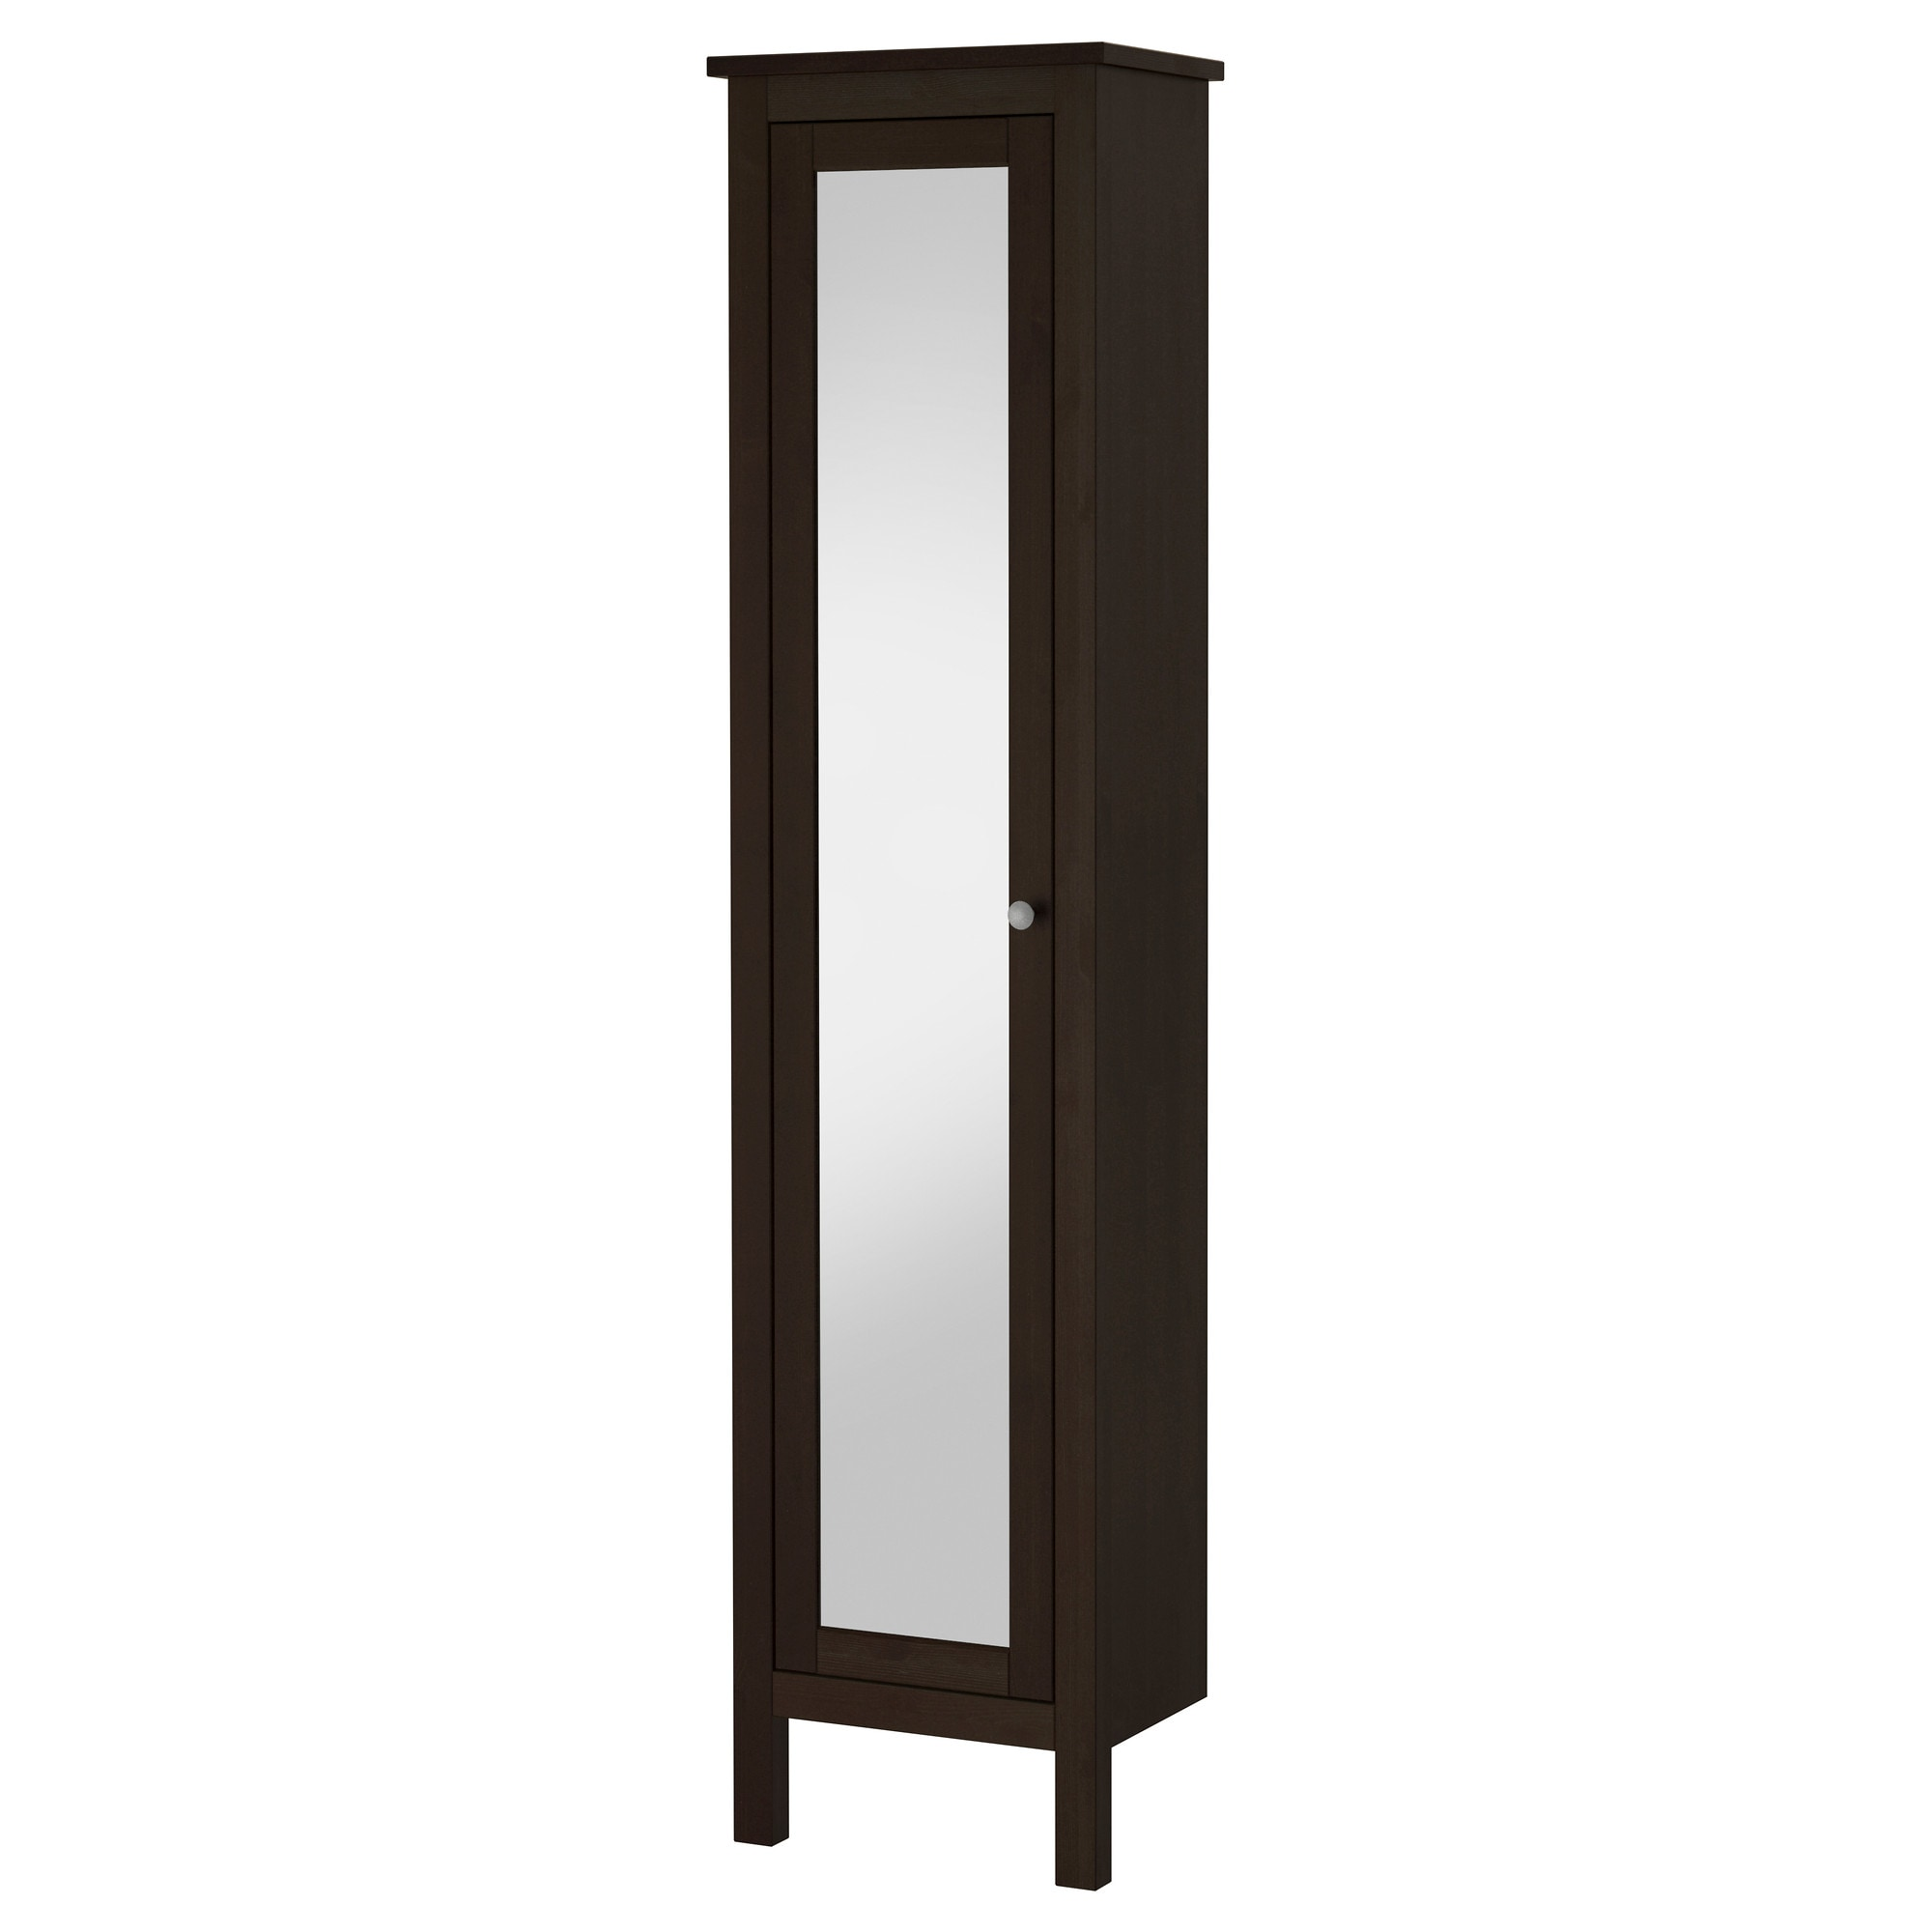 Tall bathroom storage cabinets - Hemnes High Cabinet With Mirror Door Black Brown Stain Width 19 1